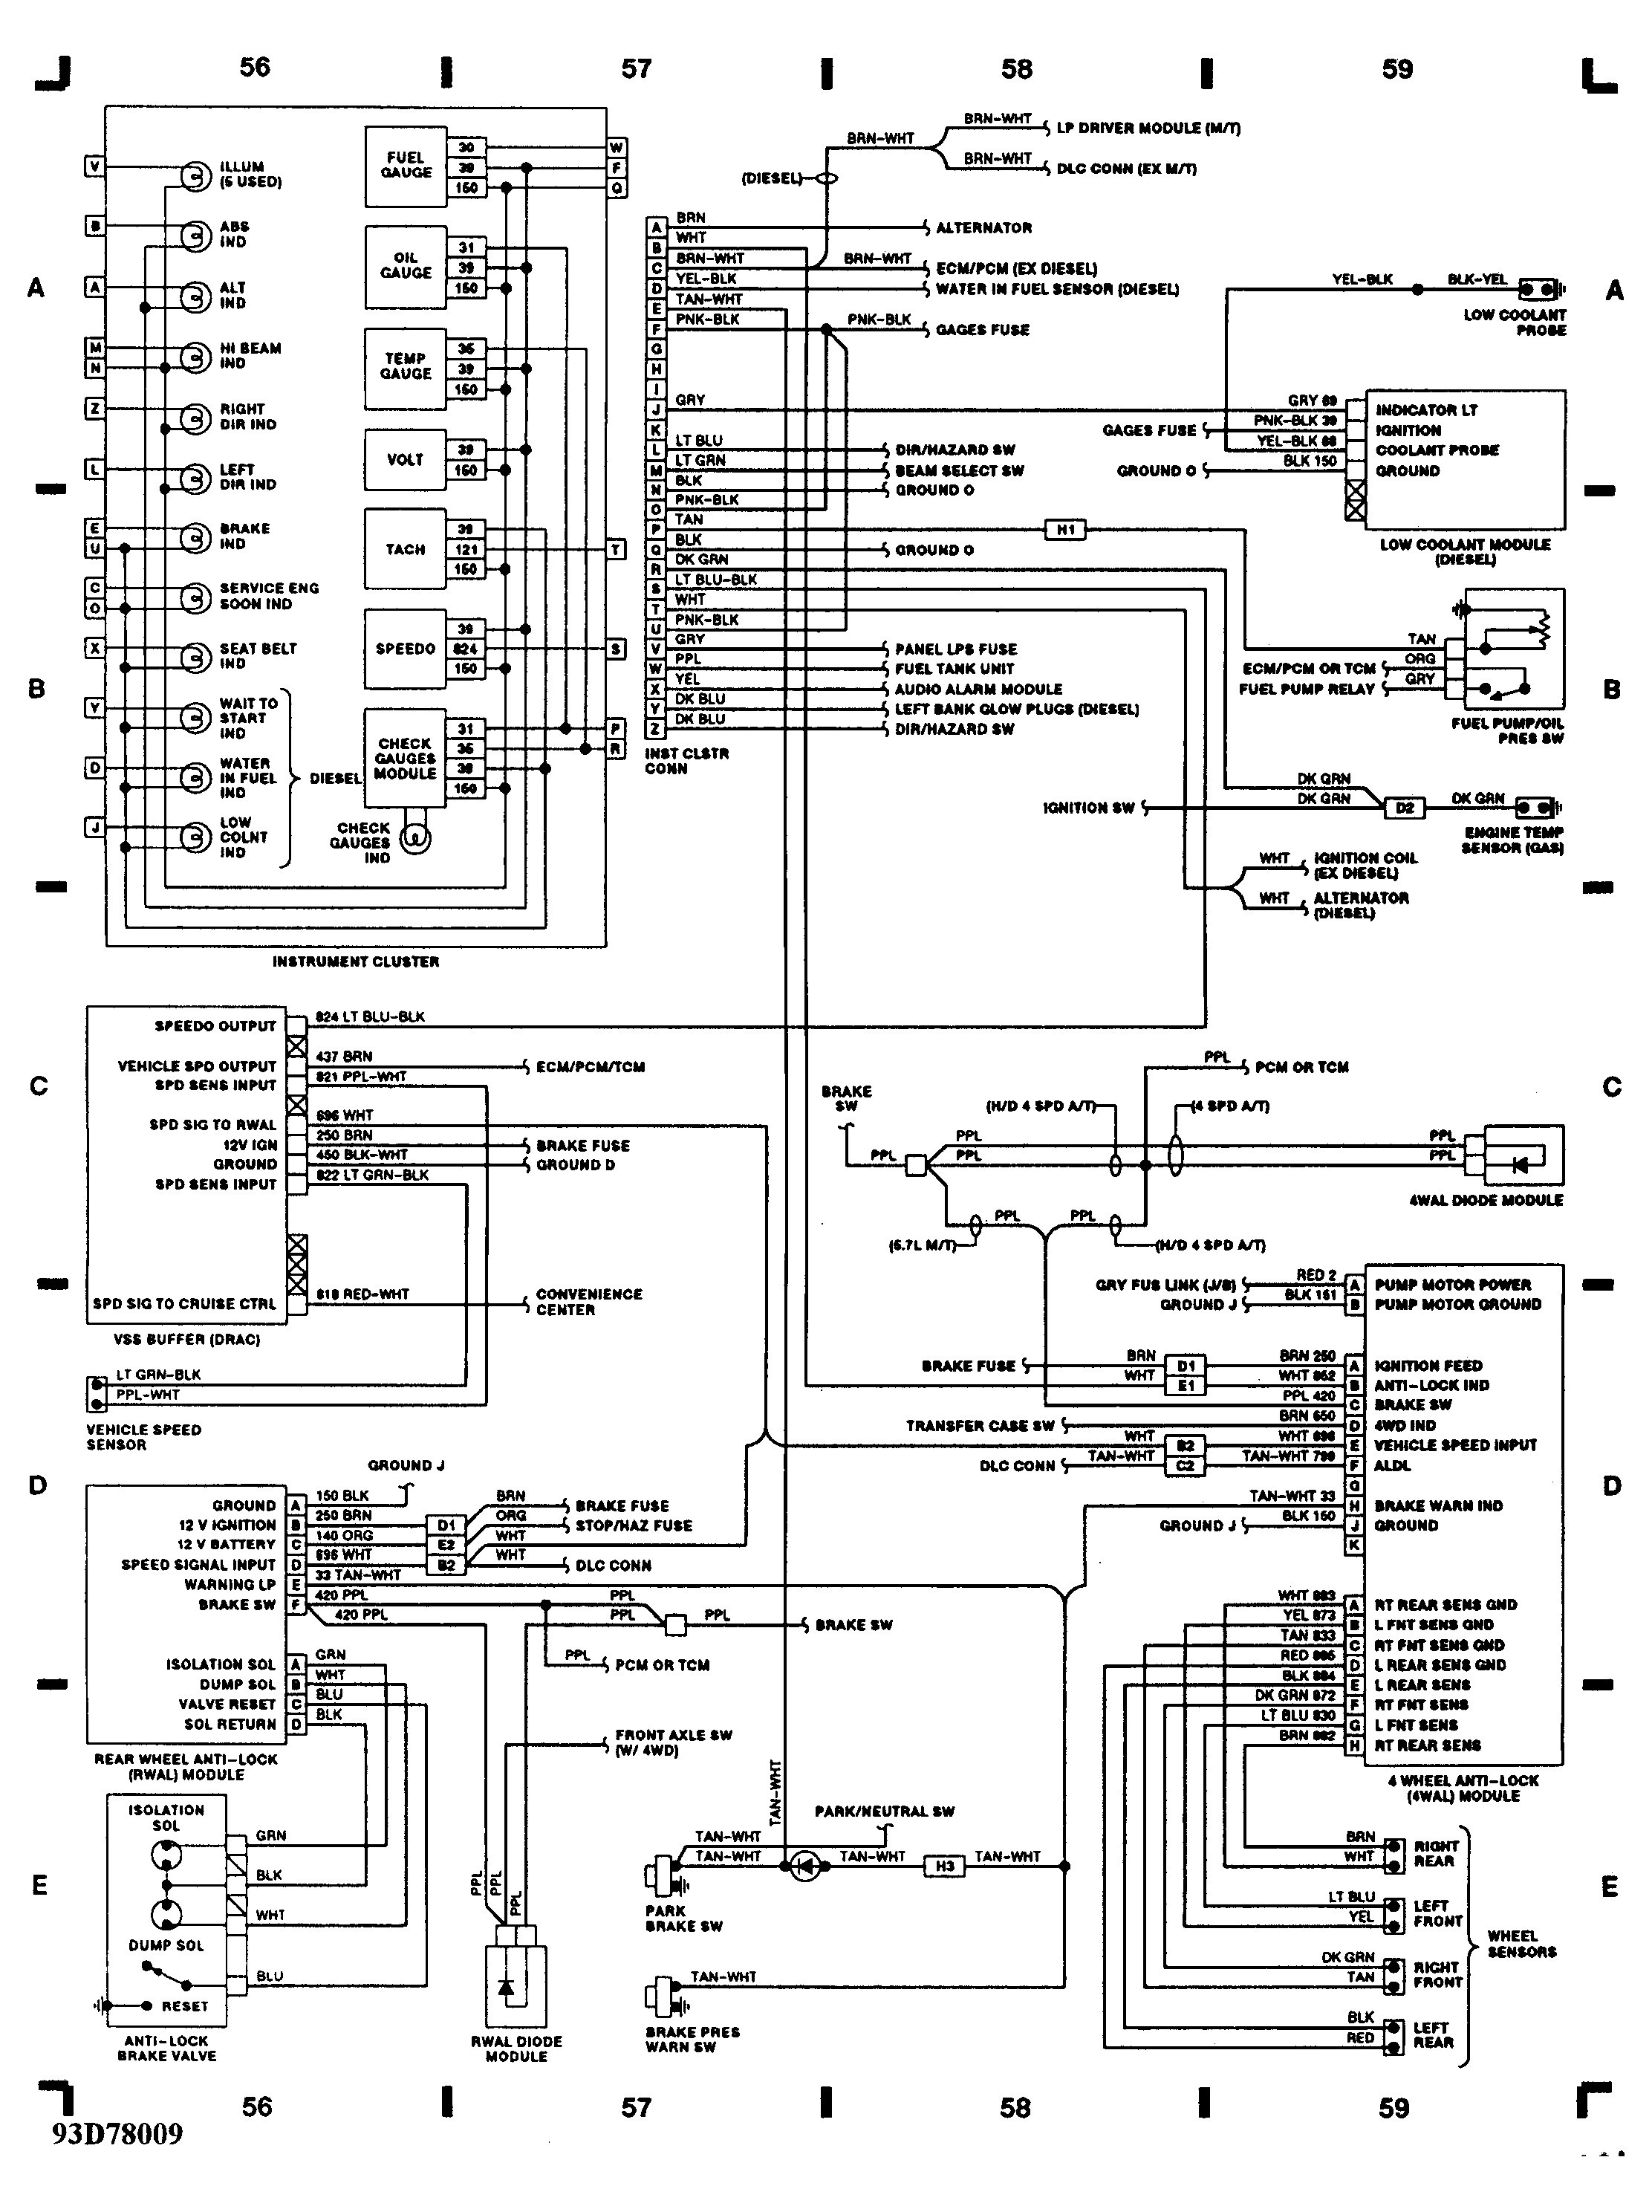 s10 wiring harness diagram wiring diagram 2001 s10 wiring harness wiring  diagram data schema